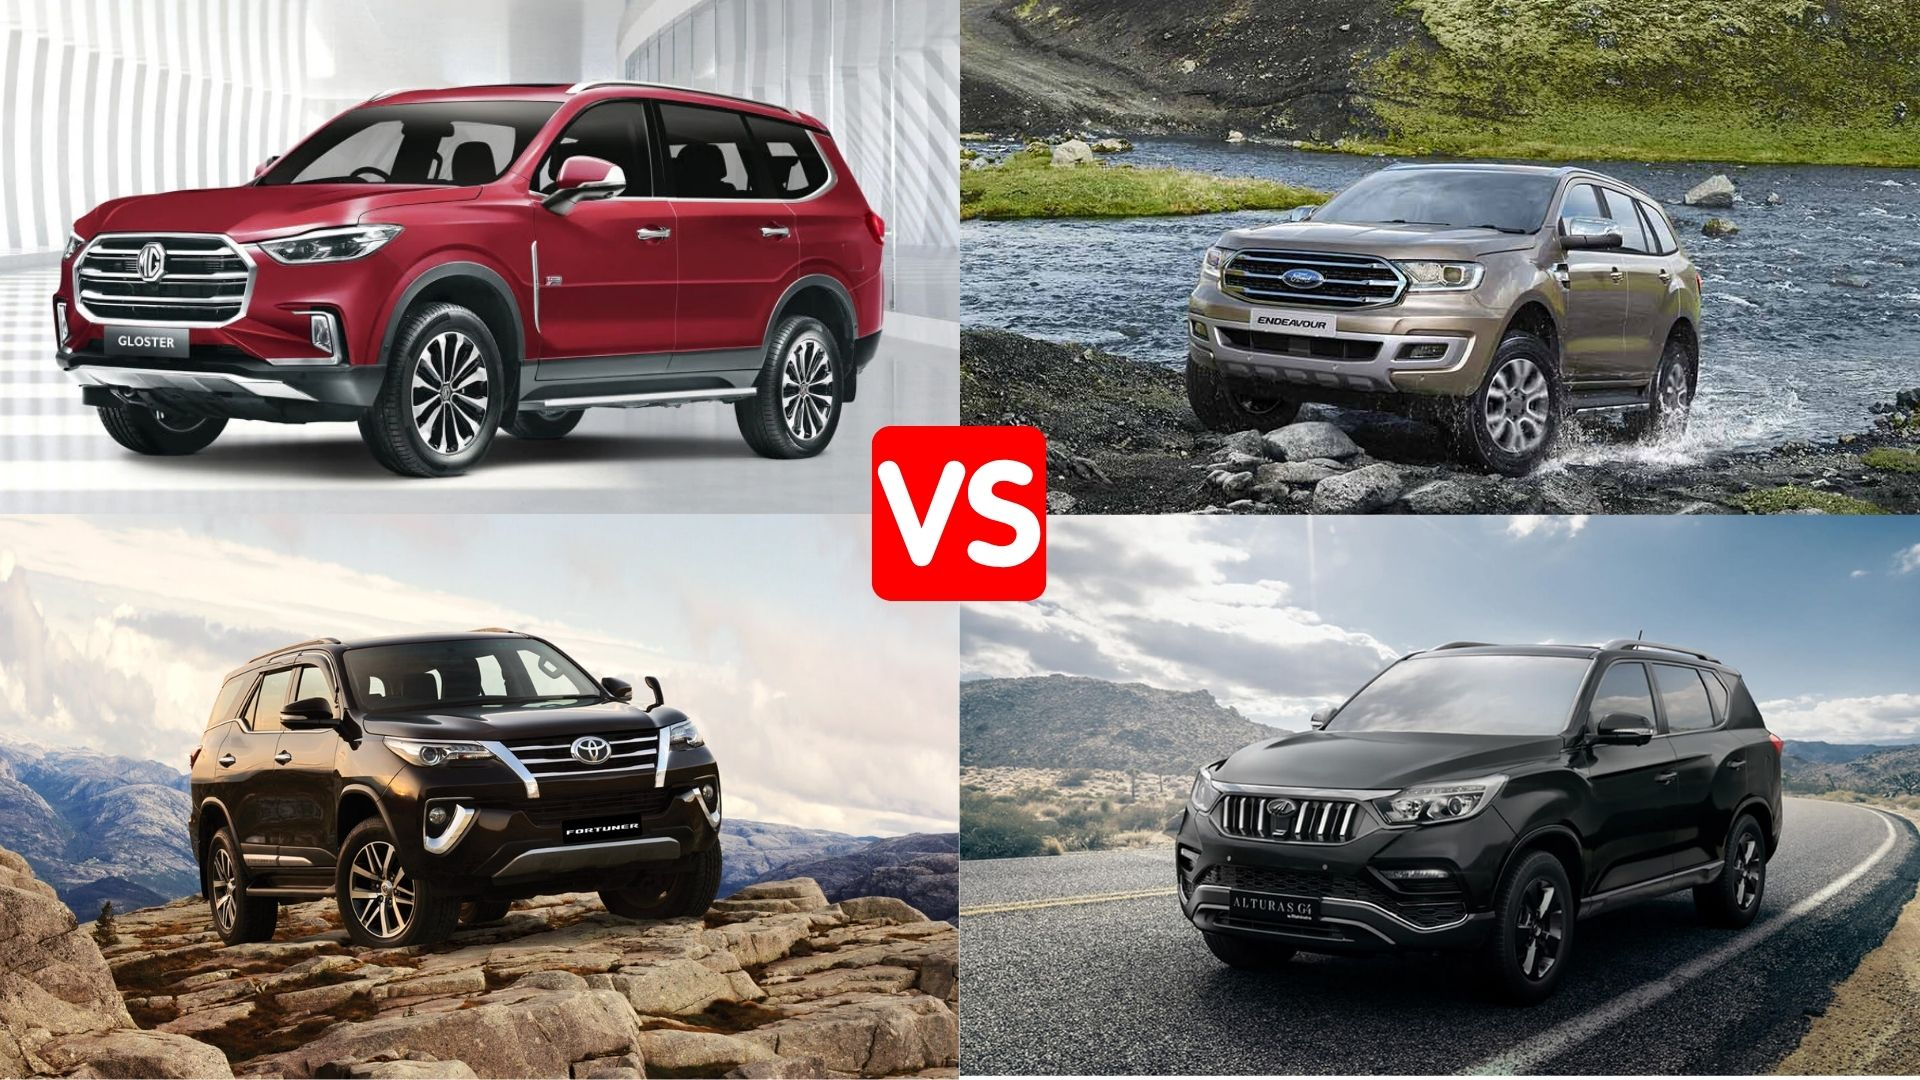 Gloster vs Fortuner vs Endeavour vs Alturas G4